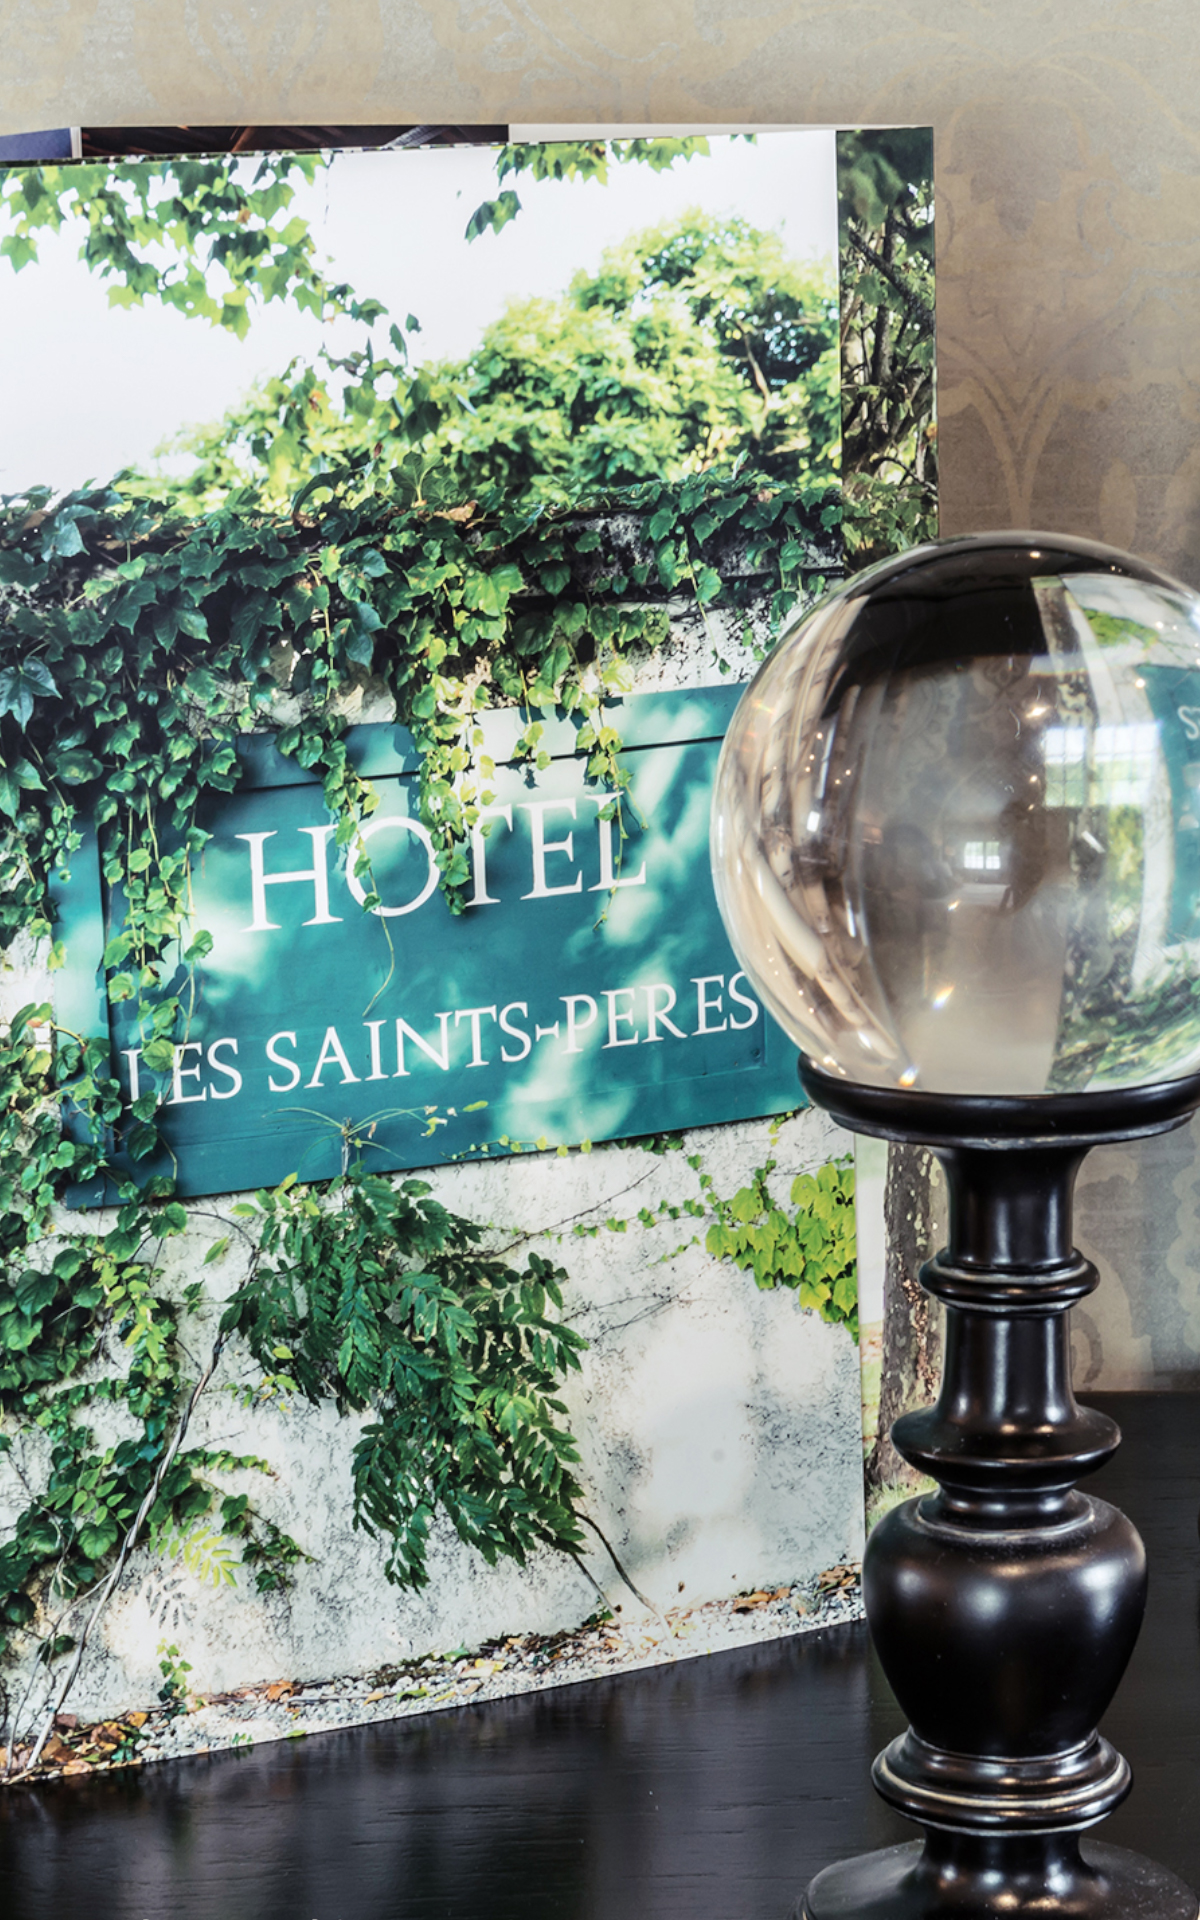 325/Ambiance_Details_SP/domaine_saints-peres_savoie_chambery_details_1.jpg